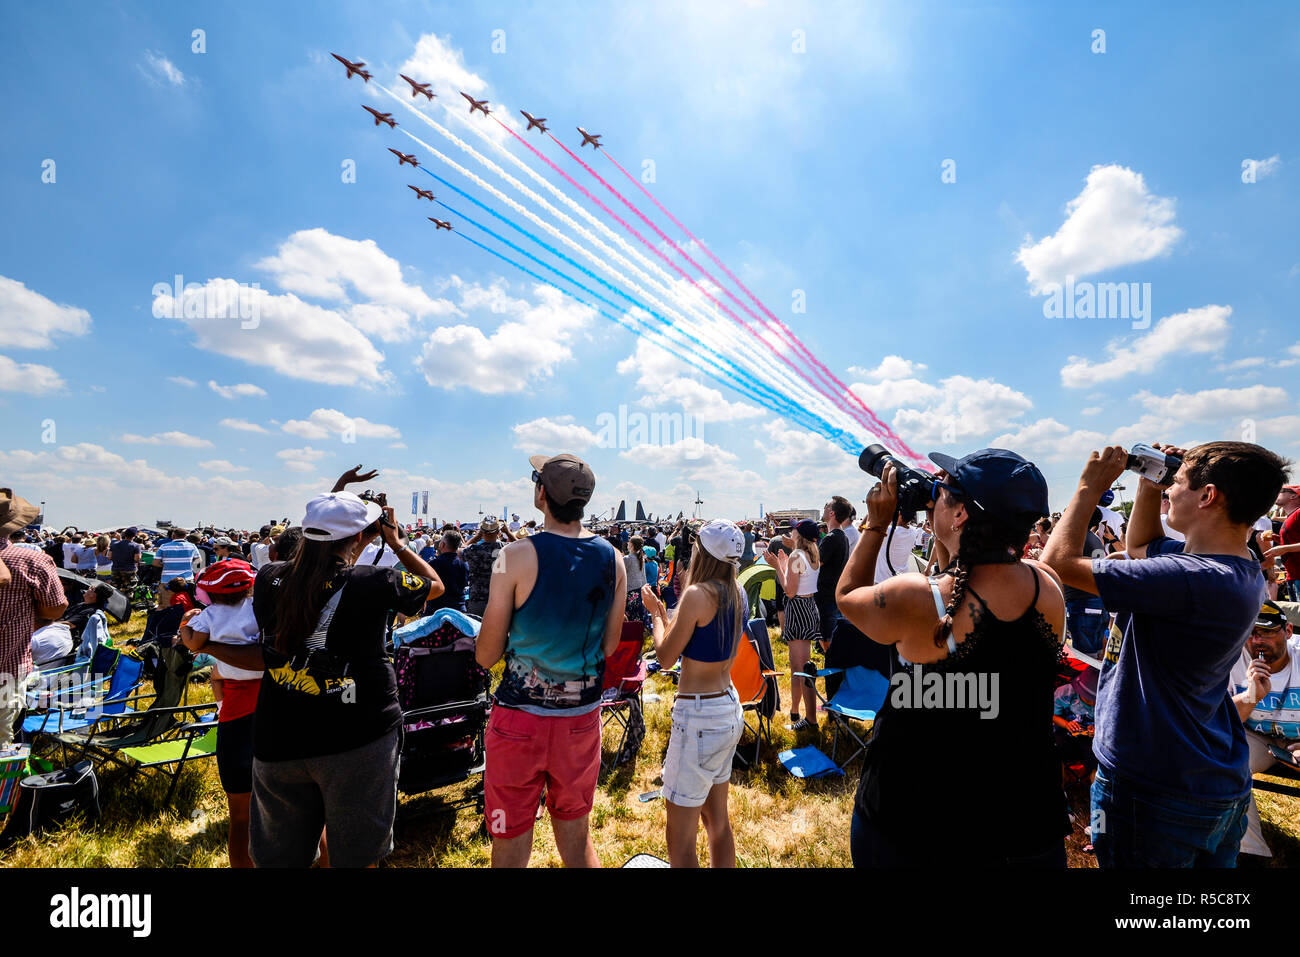 royal-air-force-raf-red-arrows-arriving-over-the-crowd-at-the-royal-international-air-tattoo-airshow-riat-raf-fairford-cotswolds-people-watching-R5C8TX.jpg